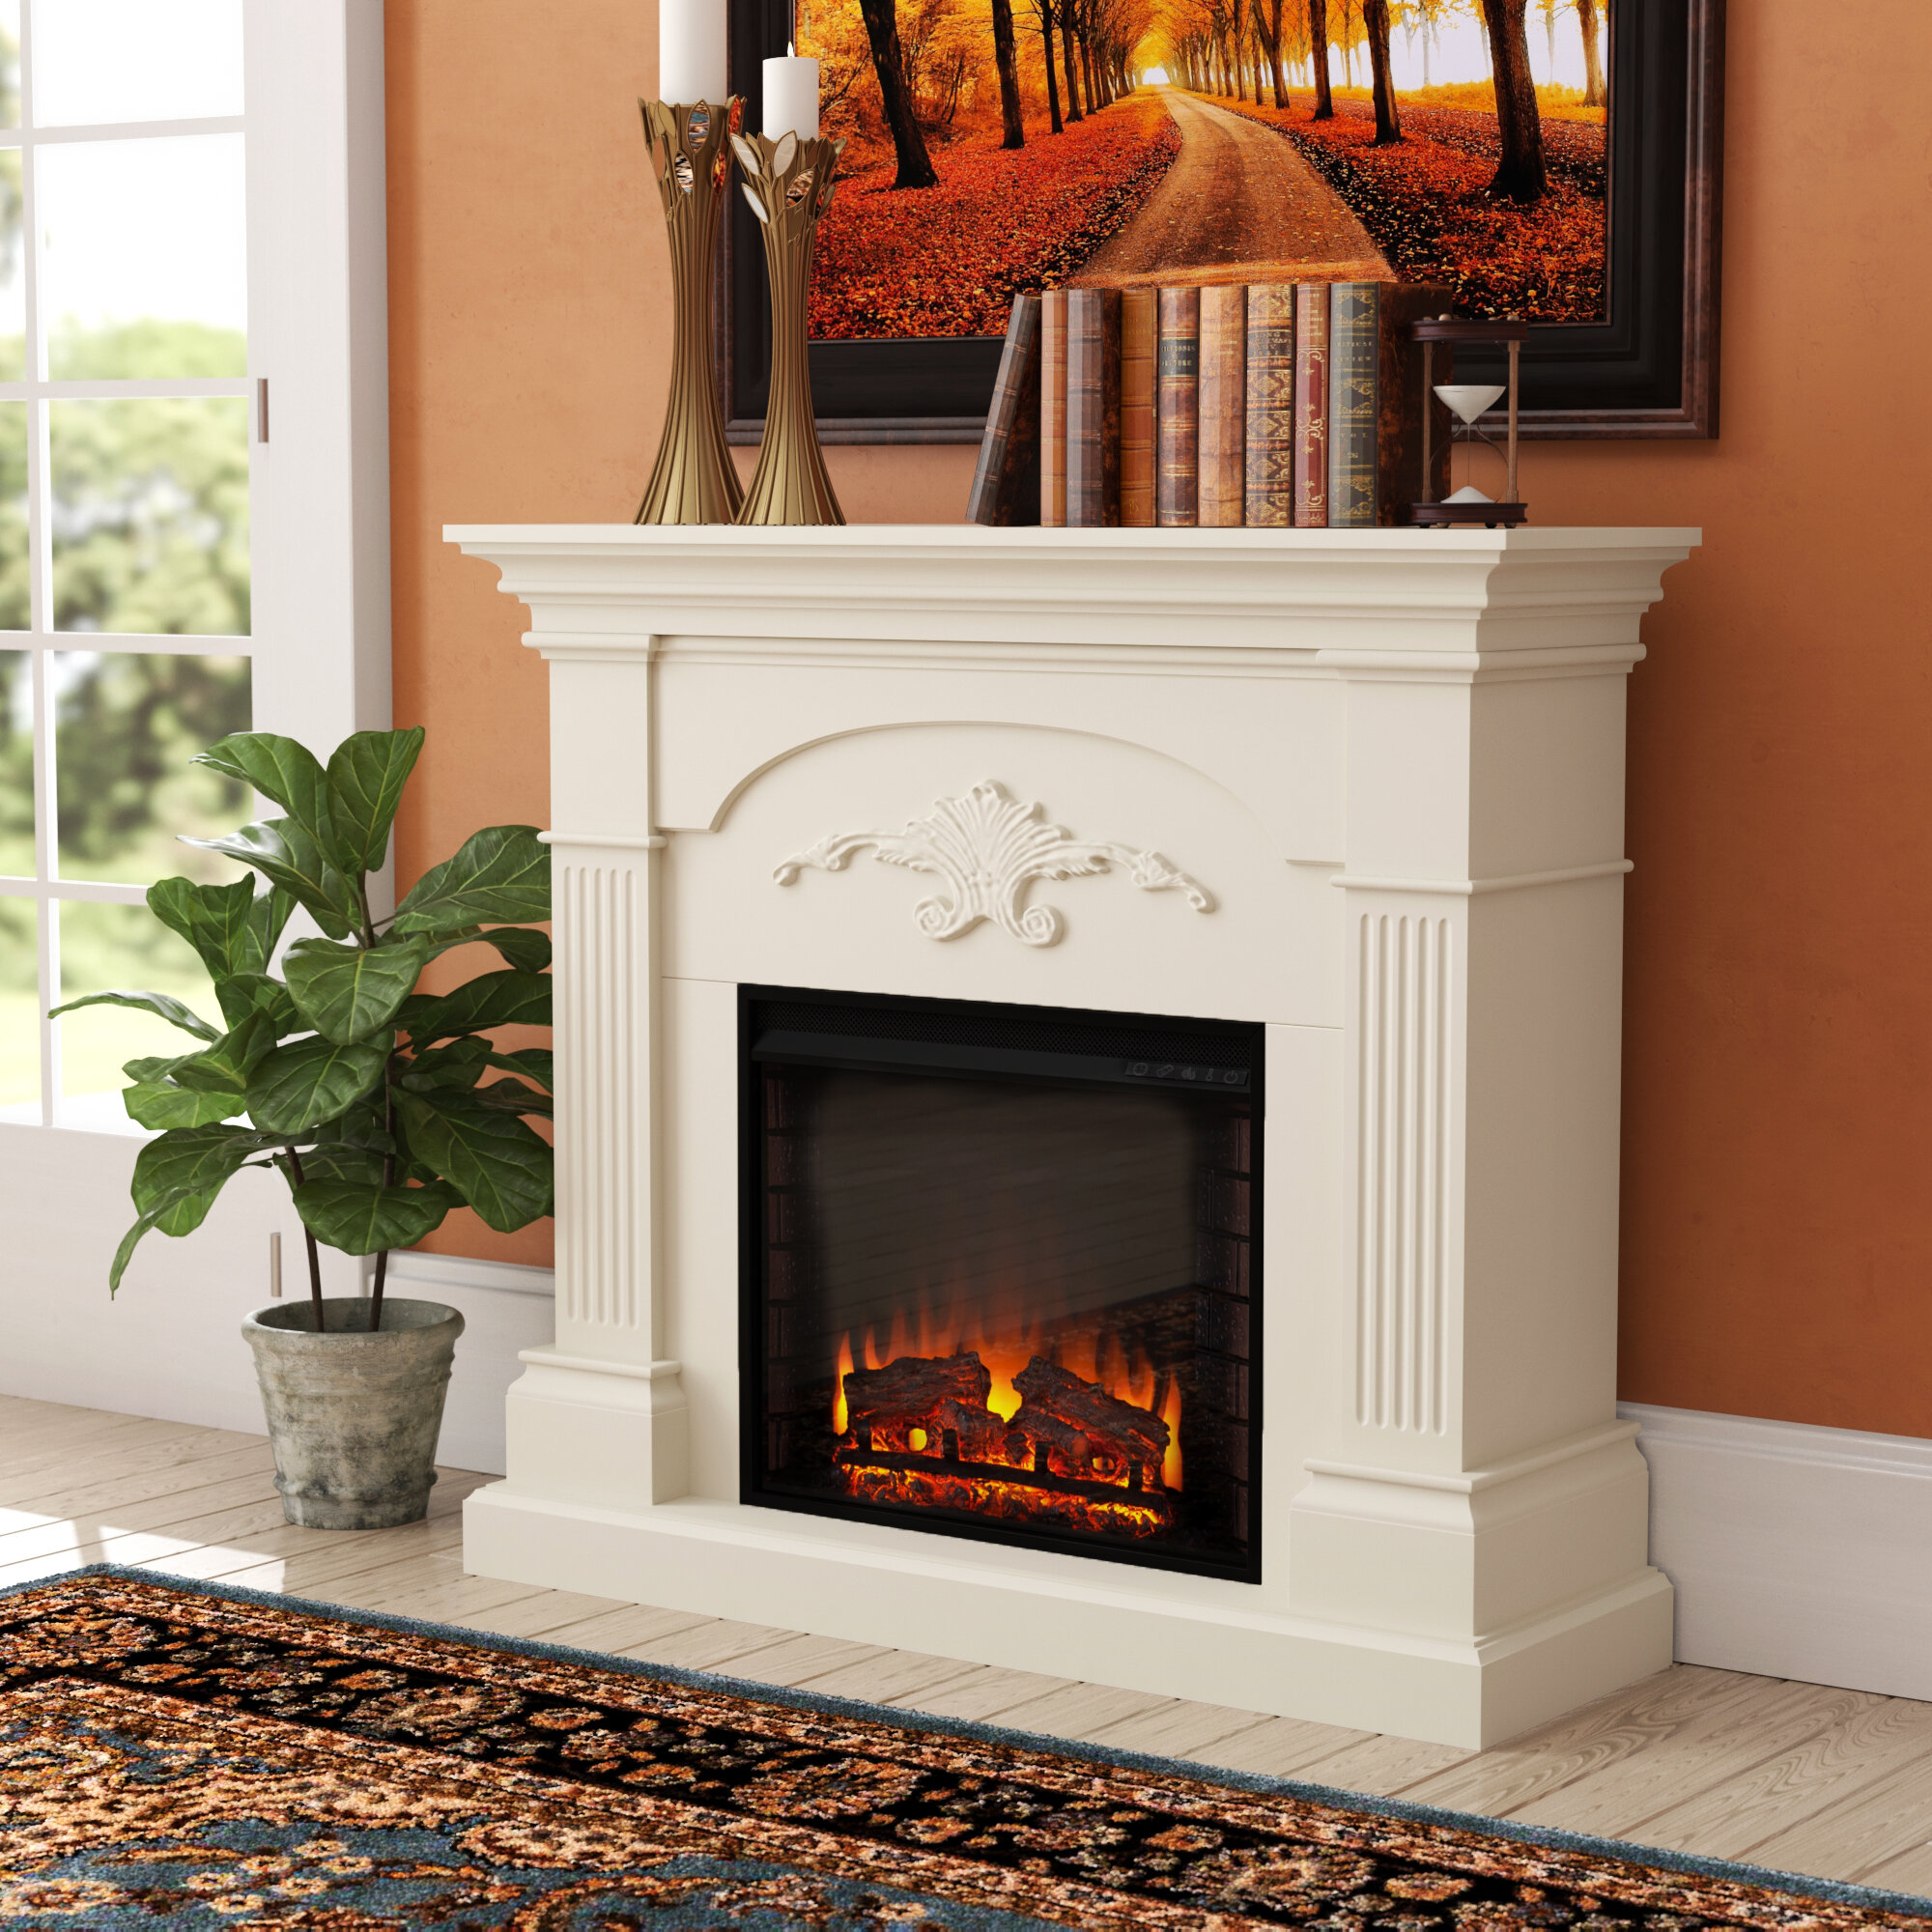 Stupendous Fake Fireplace Wayfair Interior Design Ideas Tzicisoteloinfo